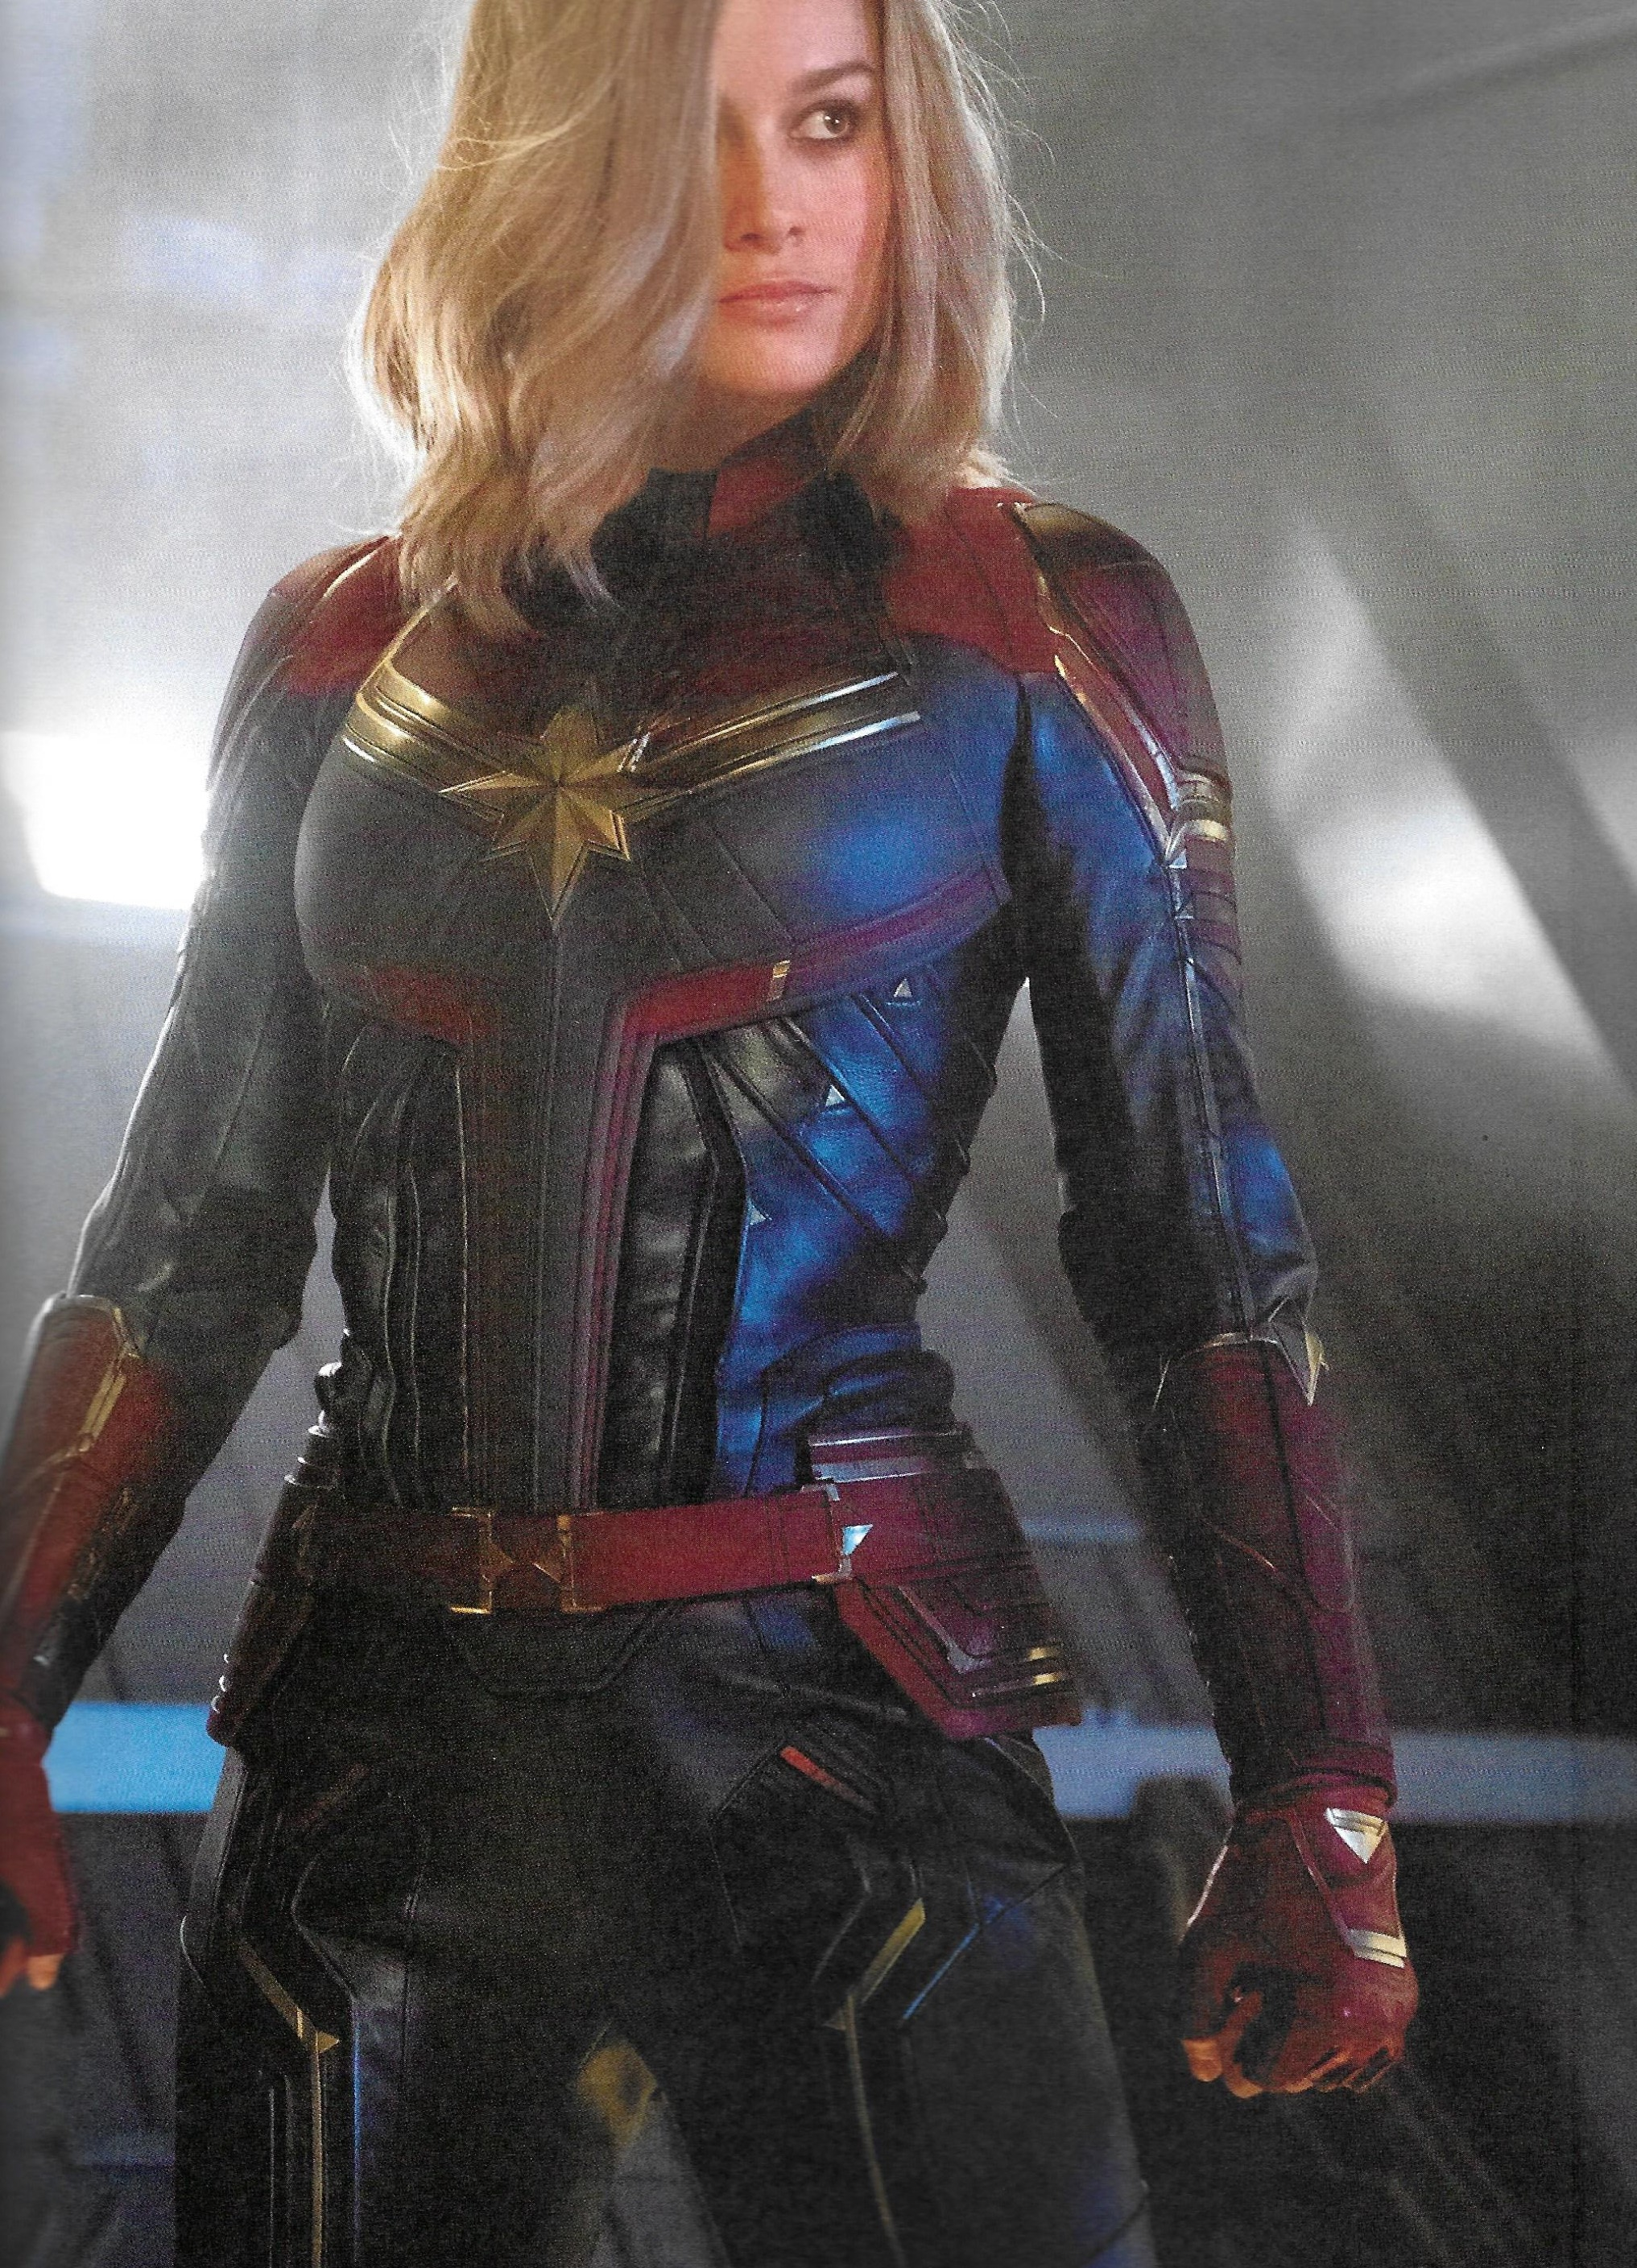 """captain marvel: brie larson weighs in on the smiling """"controversy"""